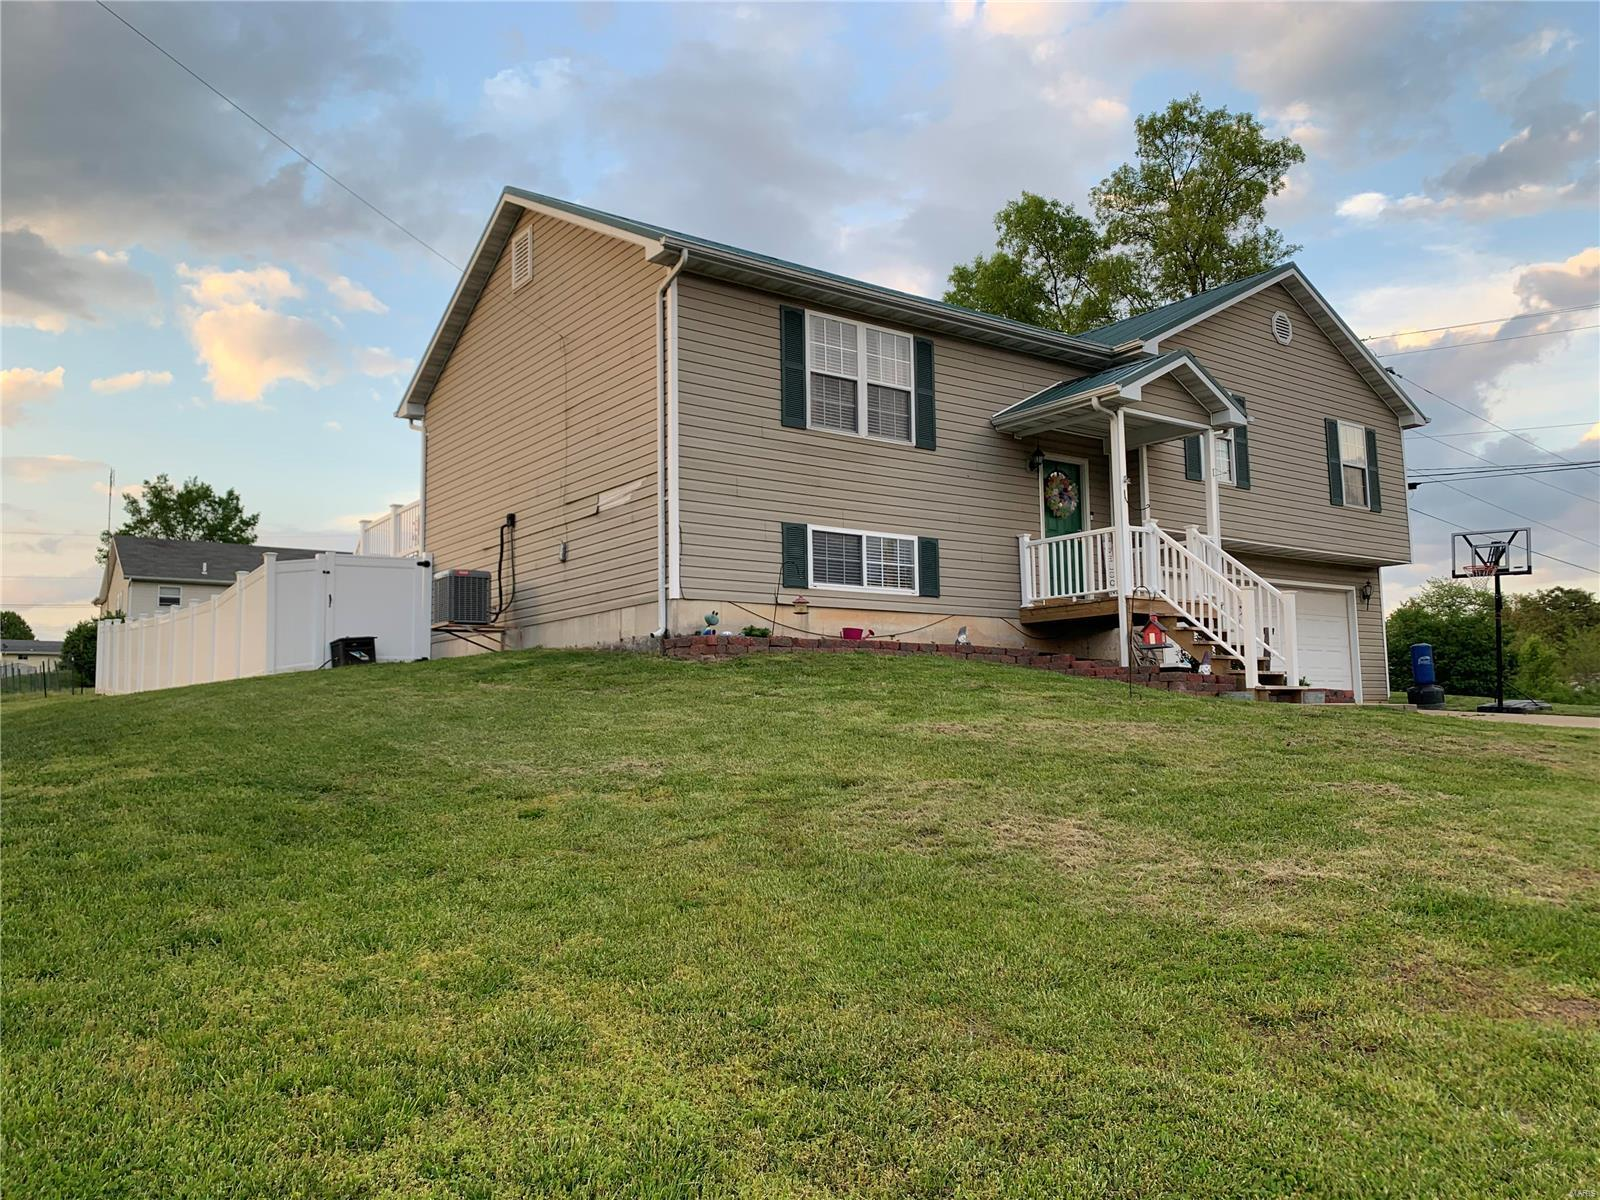 107 E CEDAR Lane Property Photo - Owensville, MO real estate listing